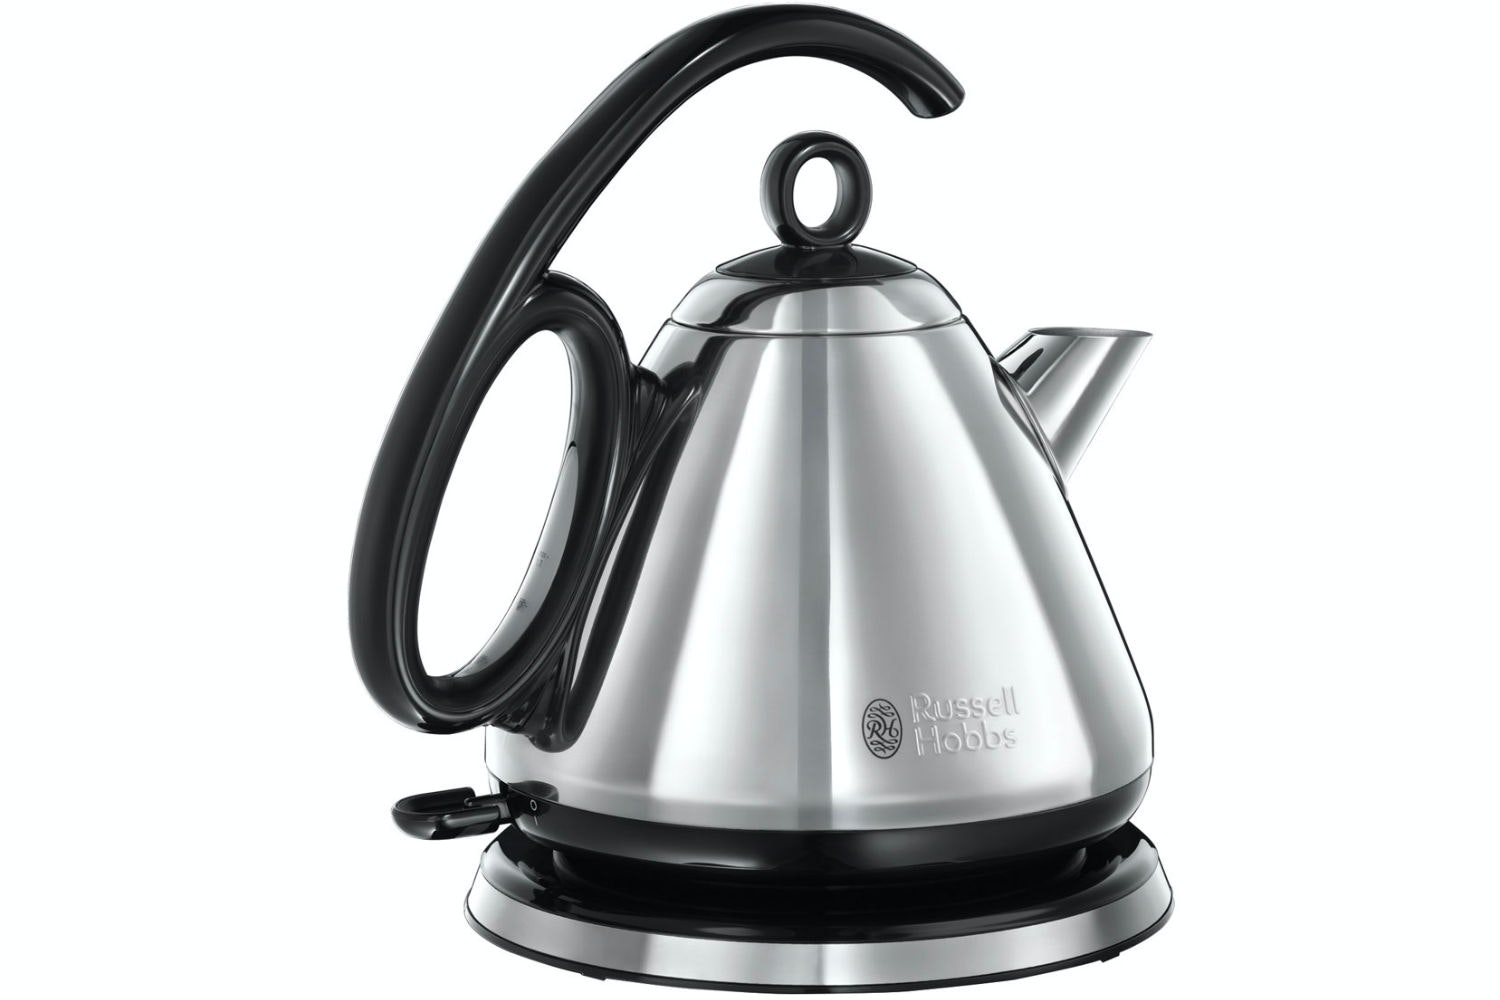 russell-hobbs-legacy-kettle-21280